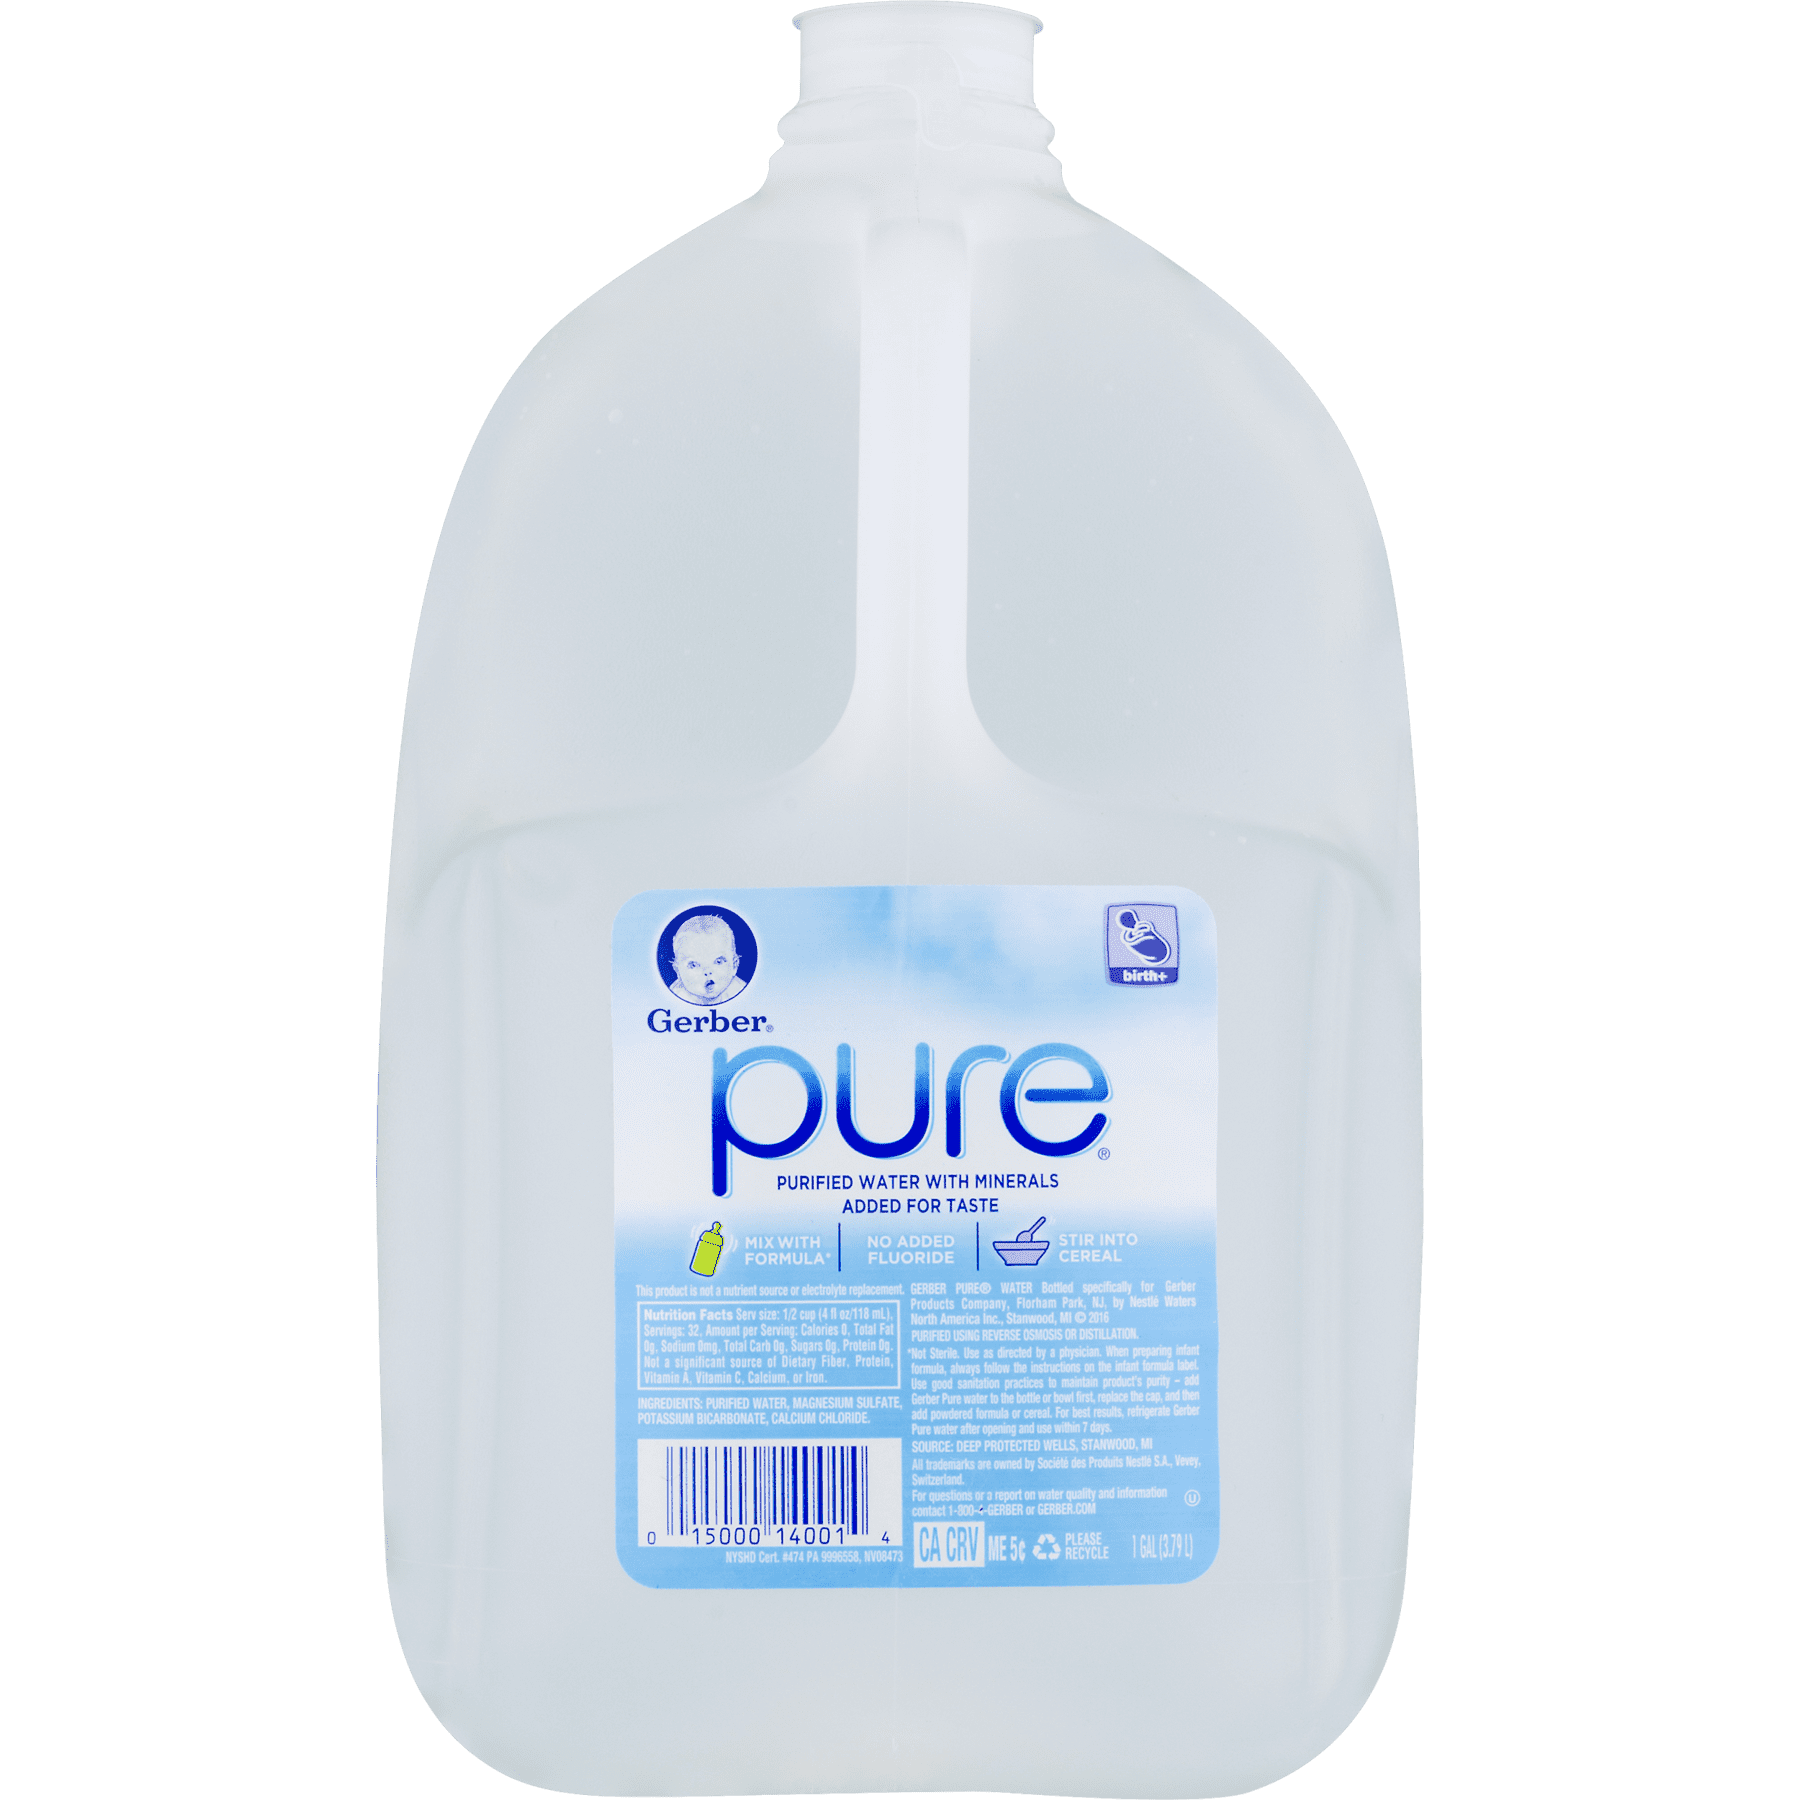 Gerber Pure Purified Water With Minerals 1 0 GAL Walmart